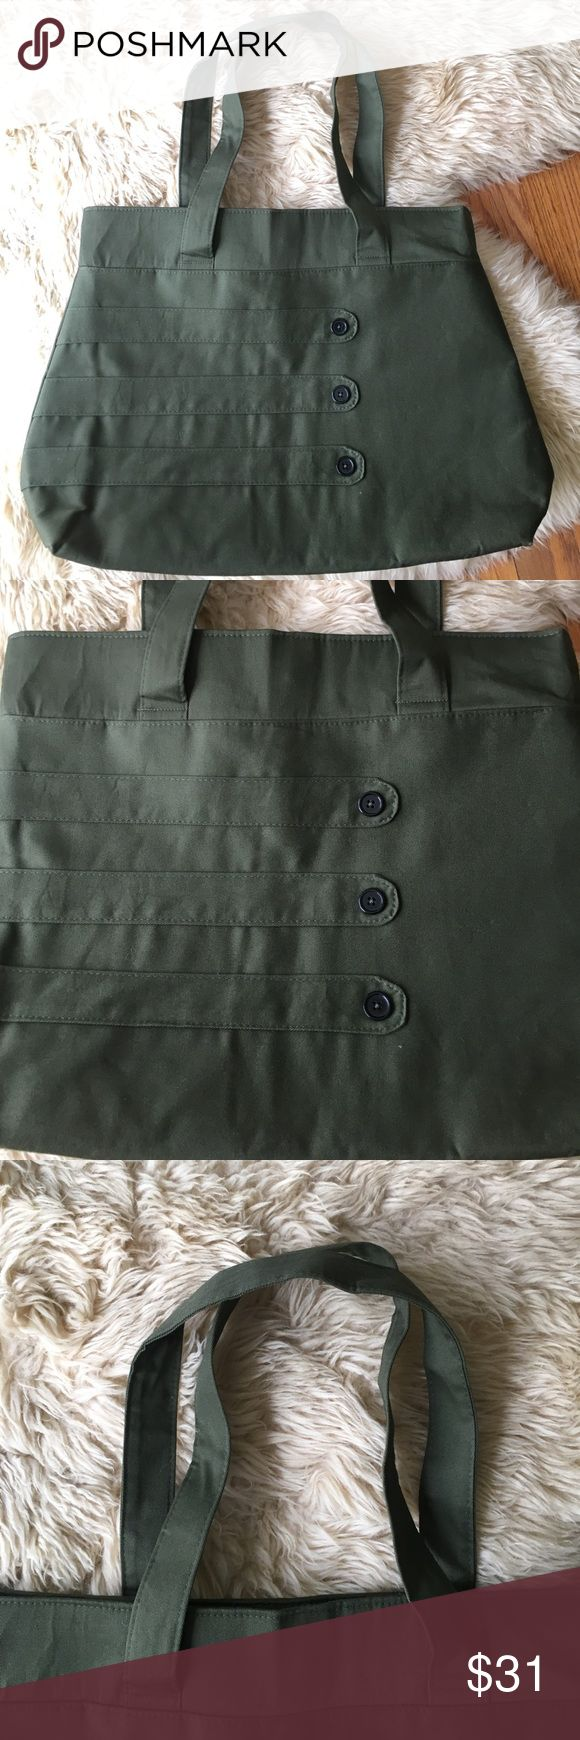 Whitney Jude Handmade Medium Tote Bag Whitney Jude Handmade Medium Tote Bag in Army green. Brand new without tags. Interior organizational pockets. Attractive interior fabric. Bundle three or more items and save 15% off! Whitney Jude Bags Totes